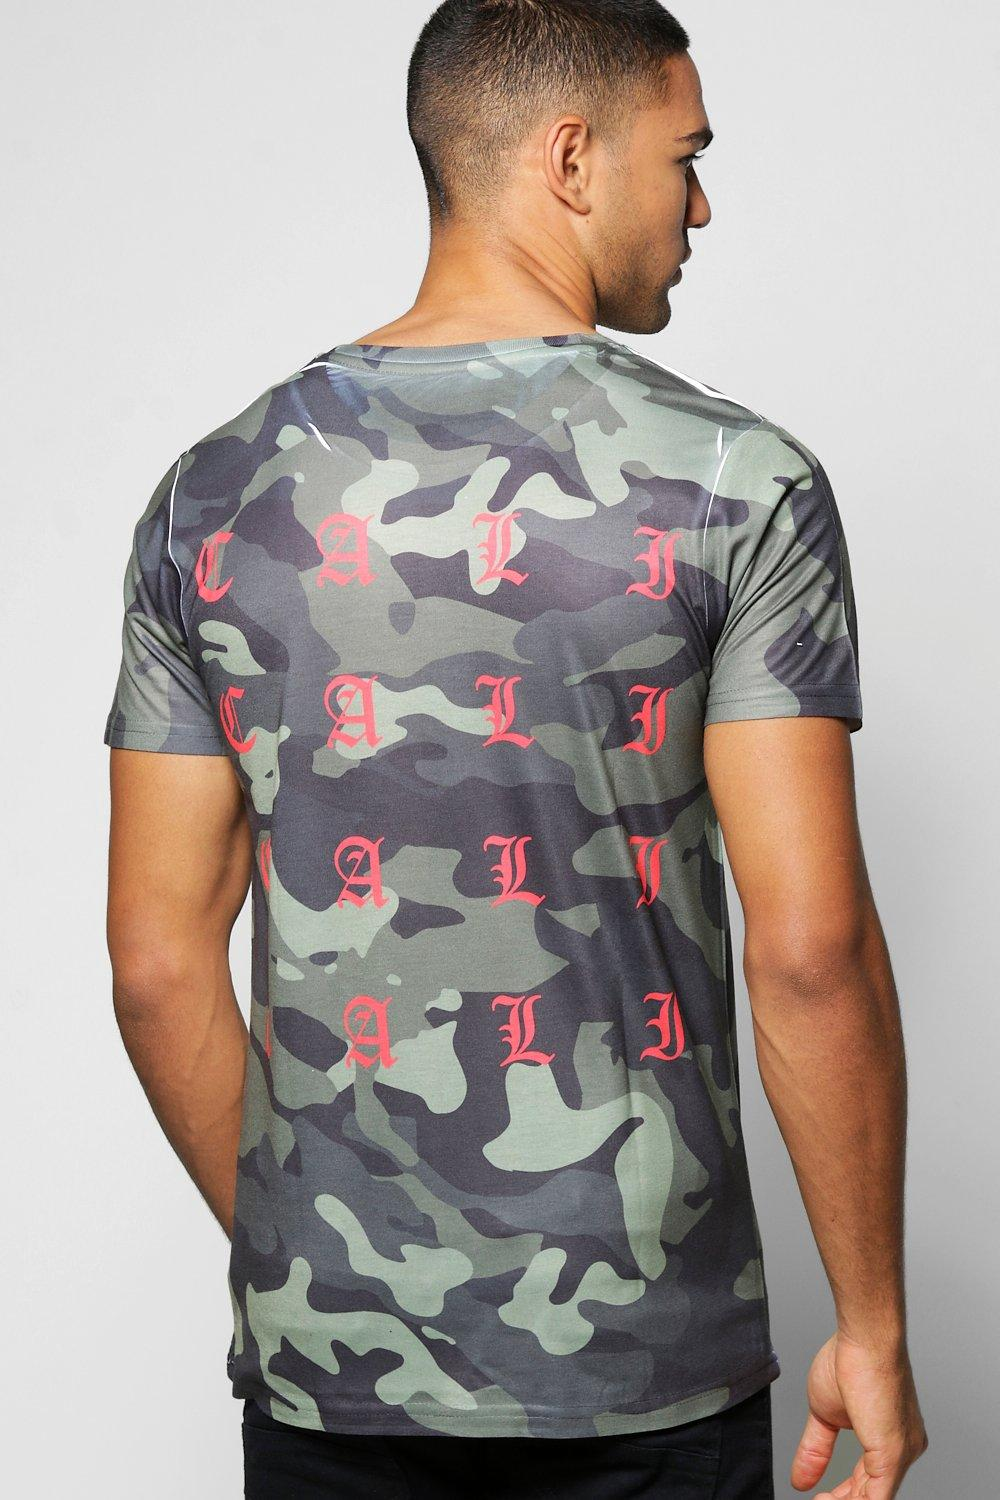 Camo T-Shirt With Cali Back Print